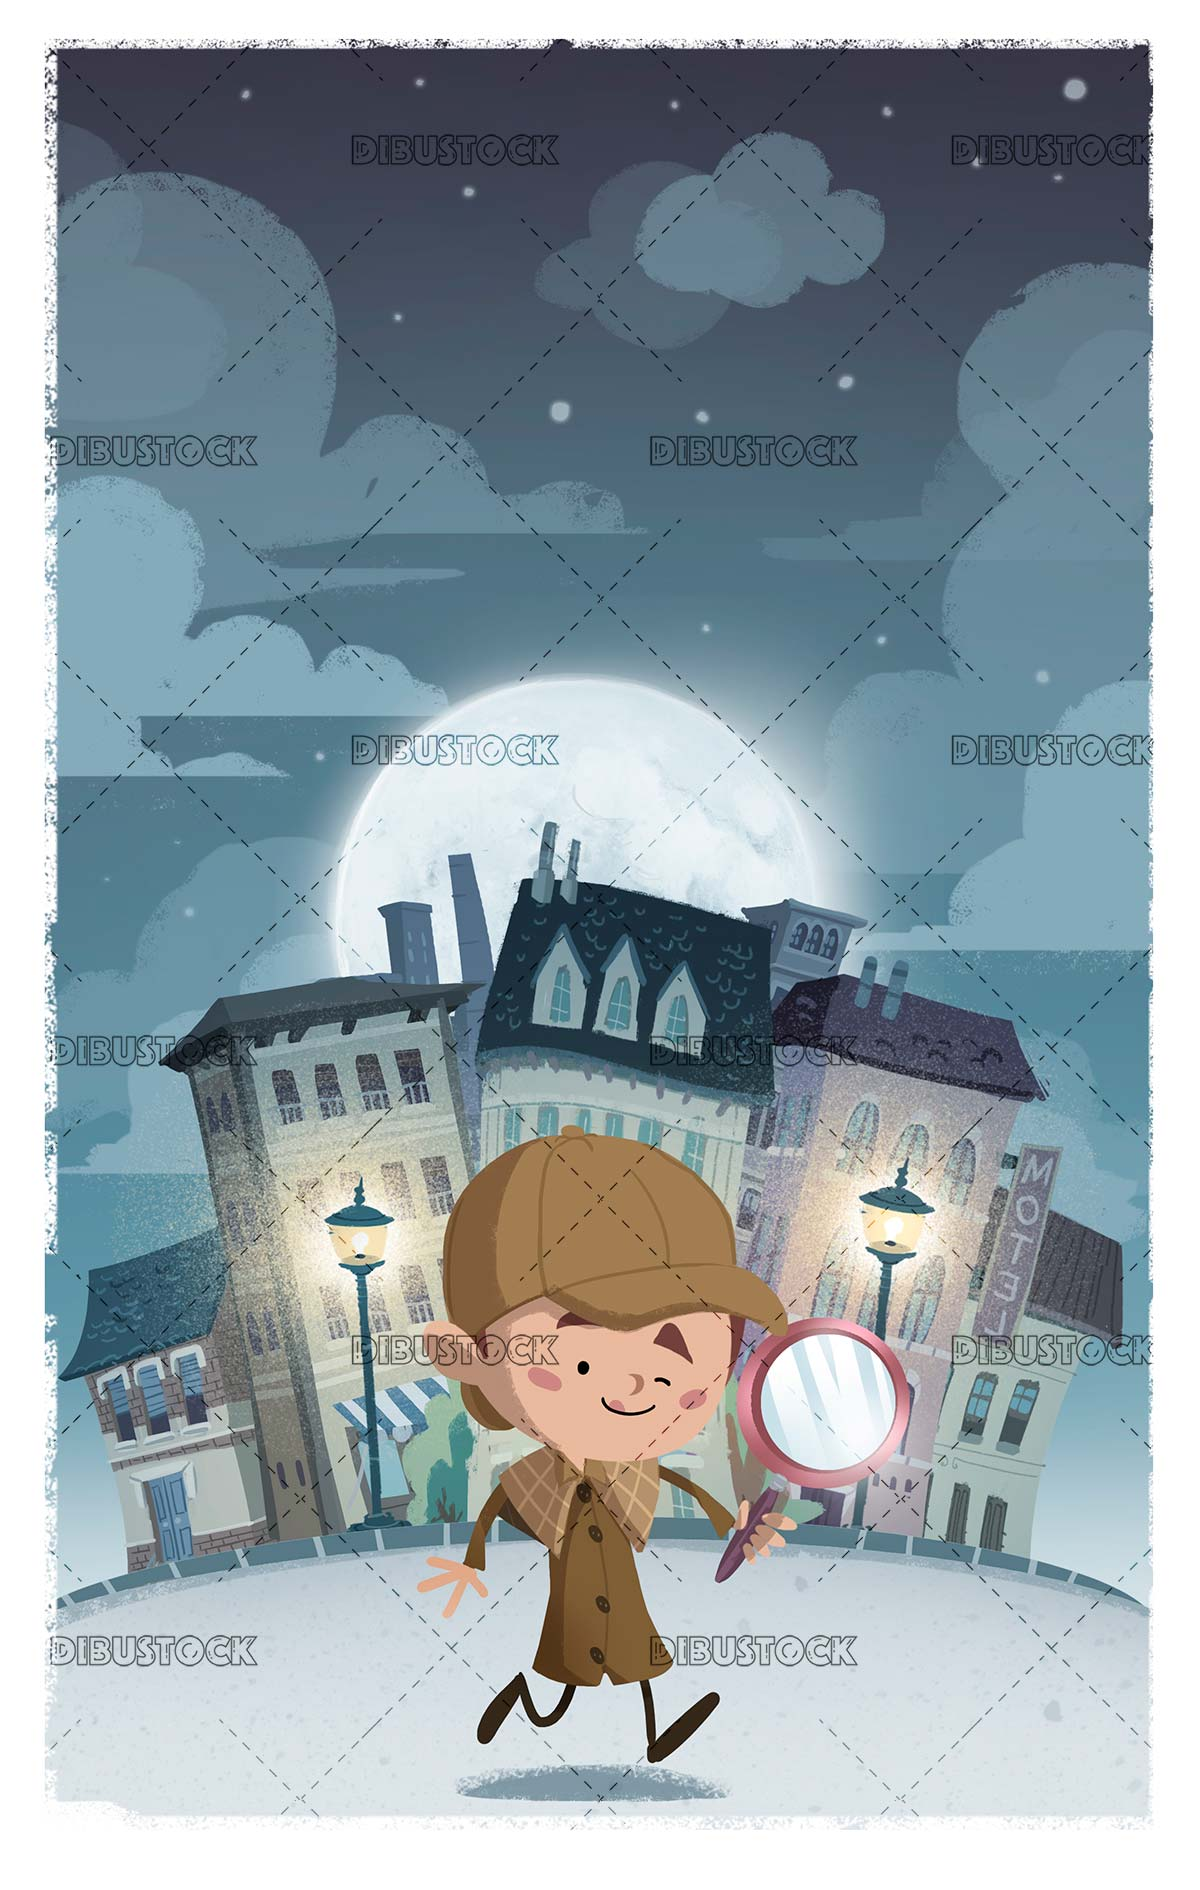 Detective boy with magnifying glass investigating the city at night